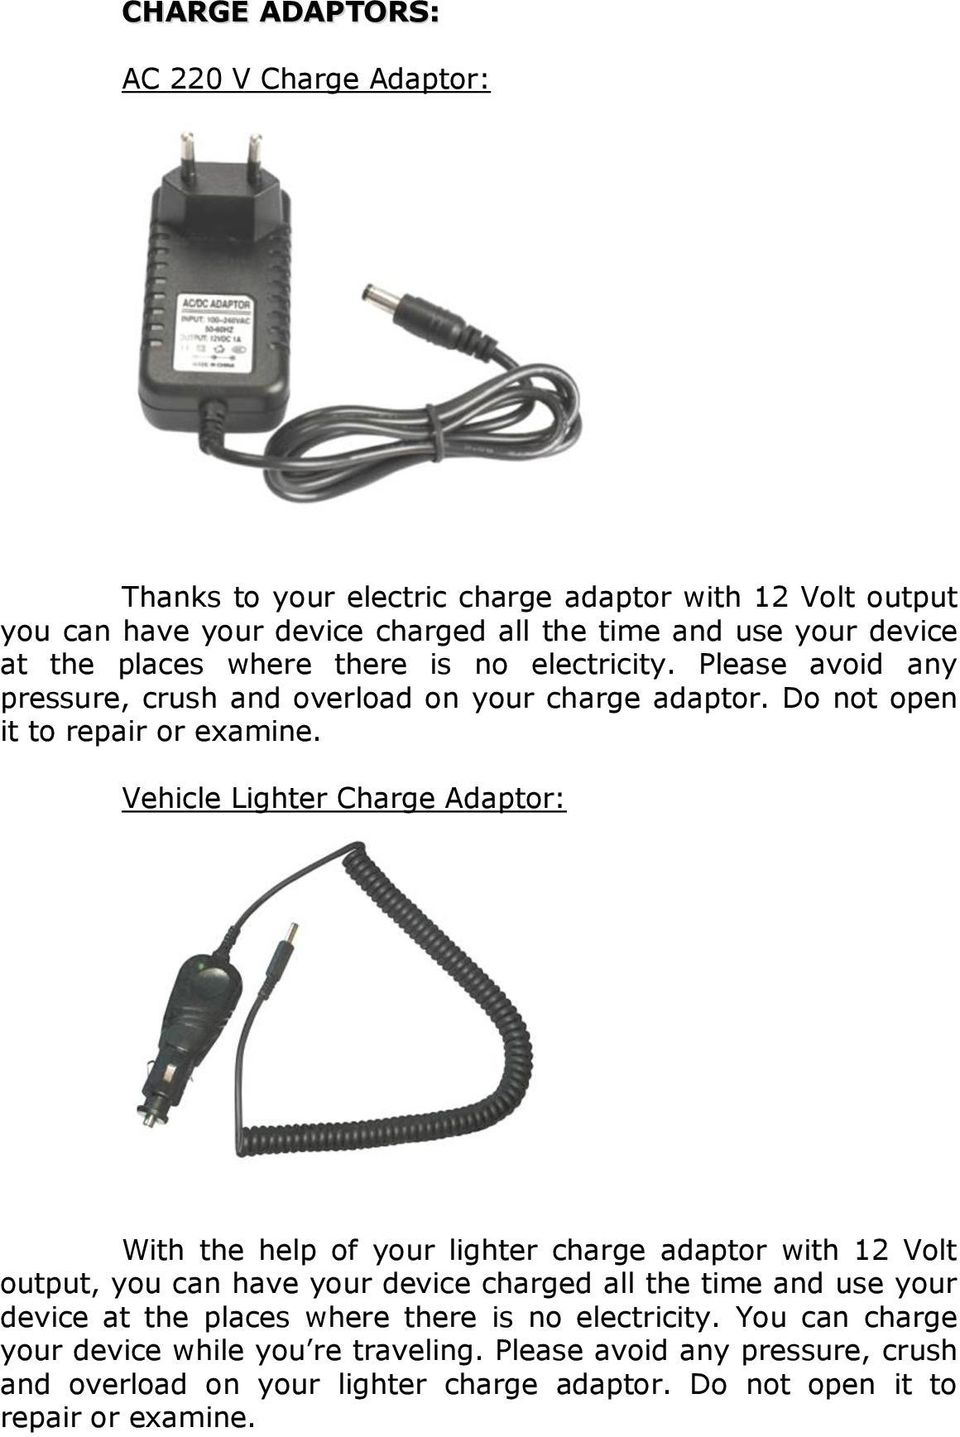 Vehicle Lighter Charge Adaptor: With the help of your lighter charge adaptor with 12 Volt output, you can have your device charged all the time and use your device at the